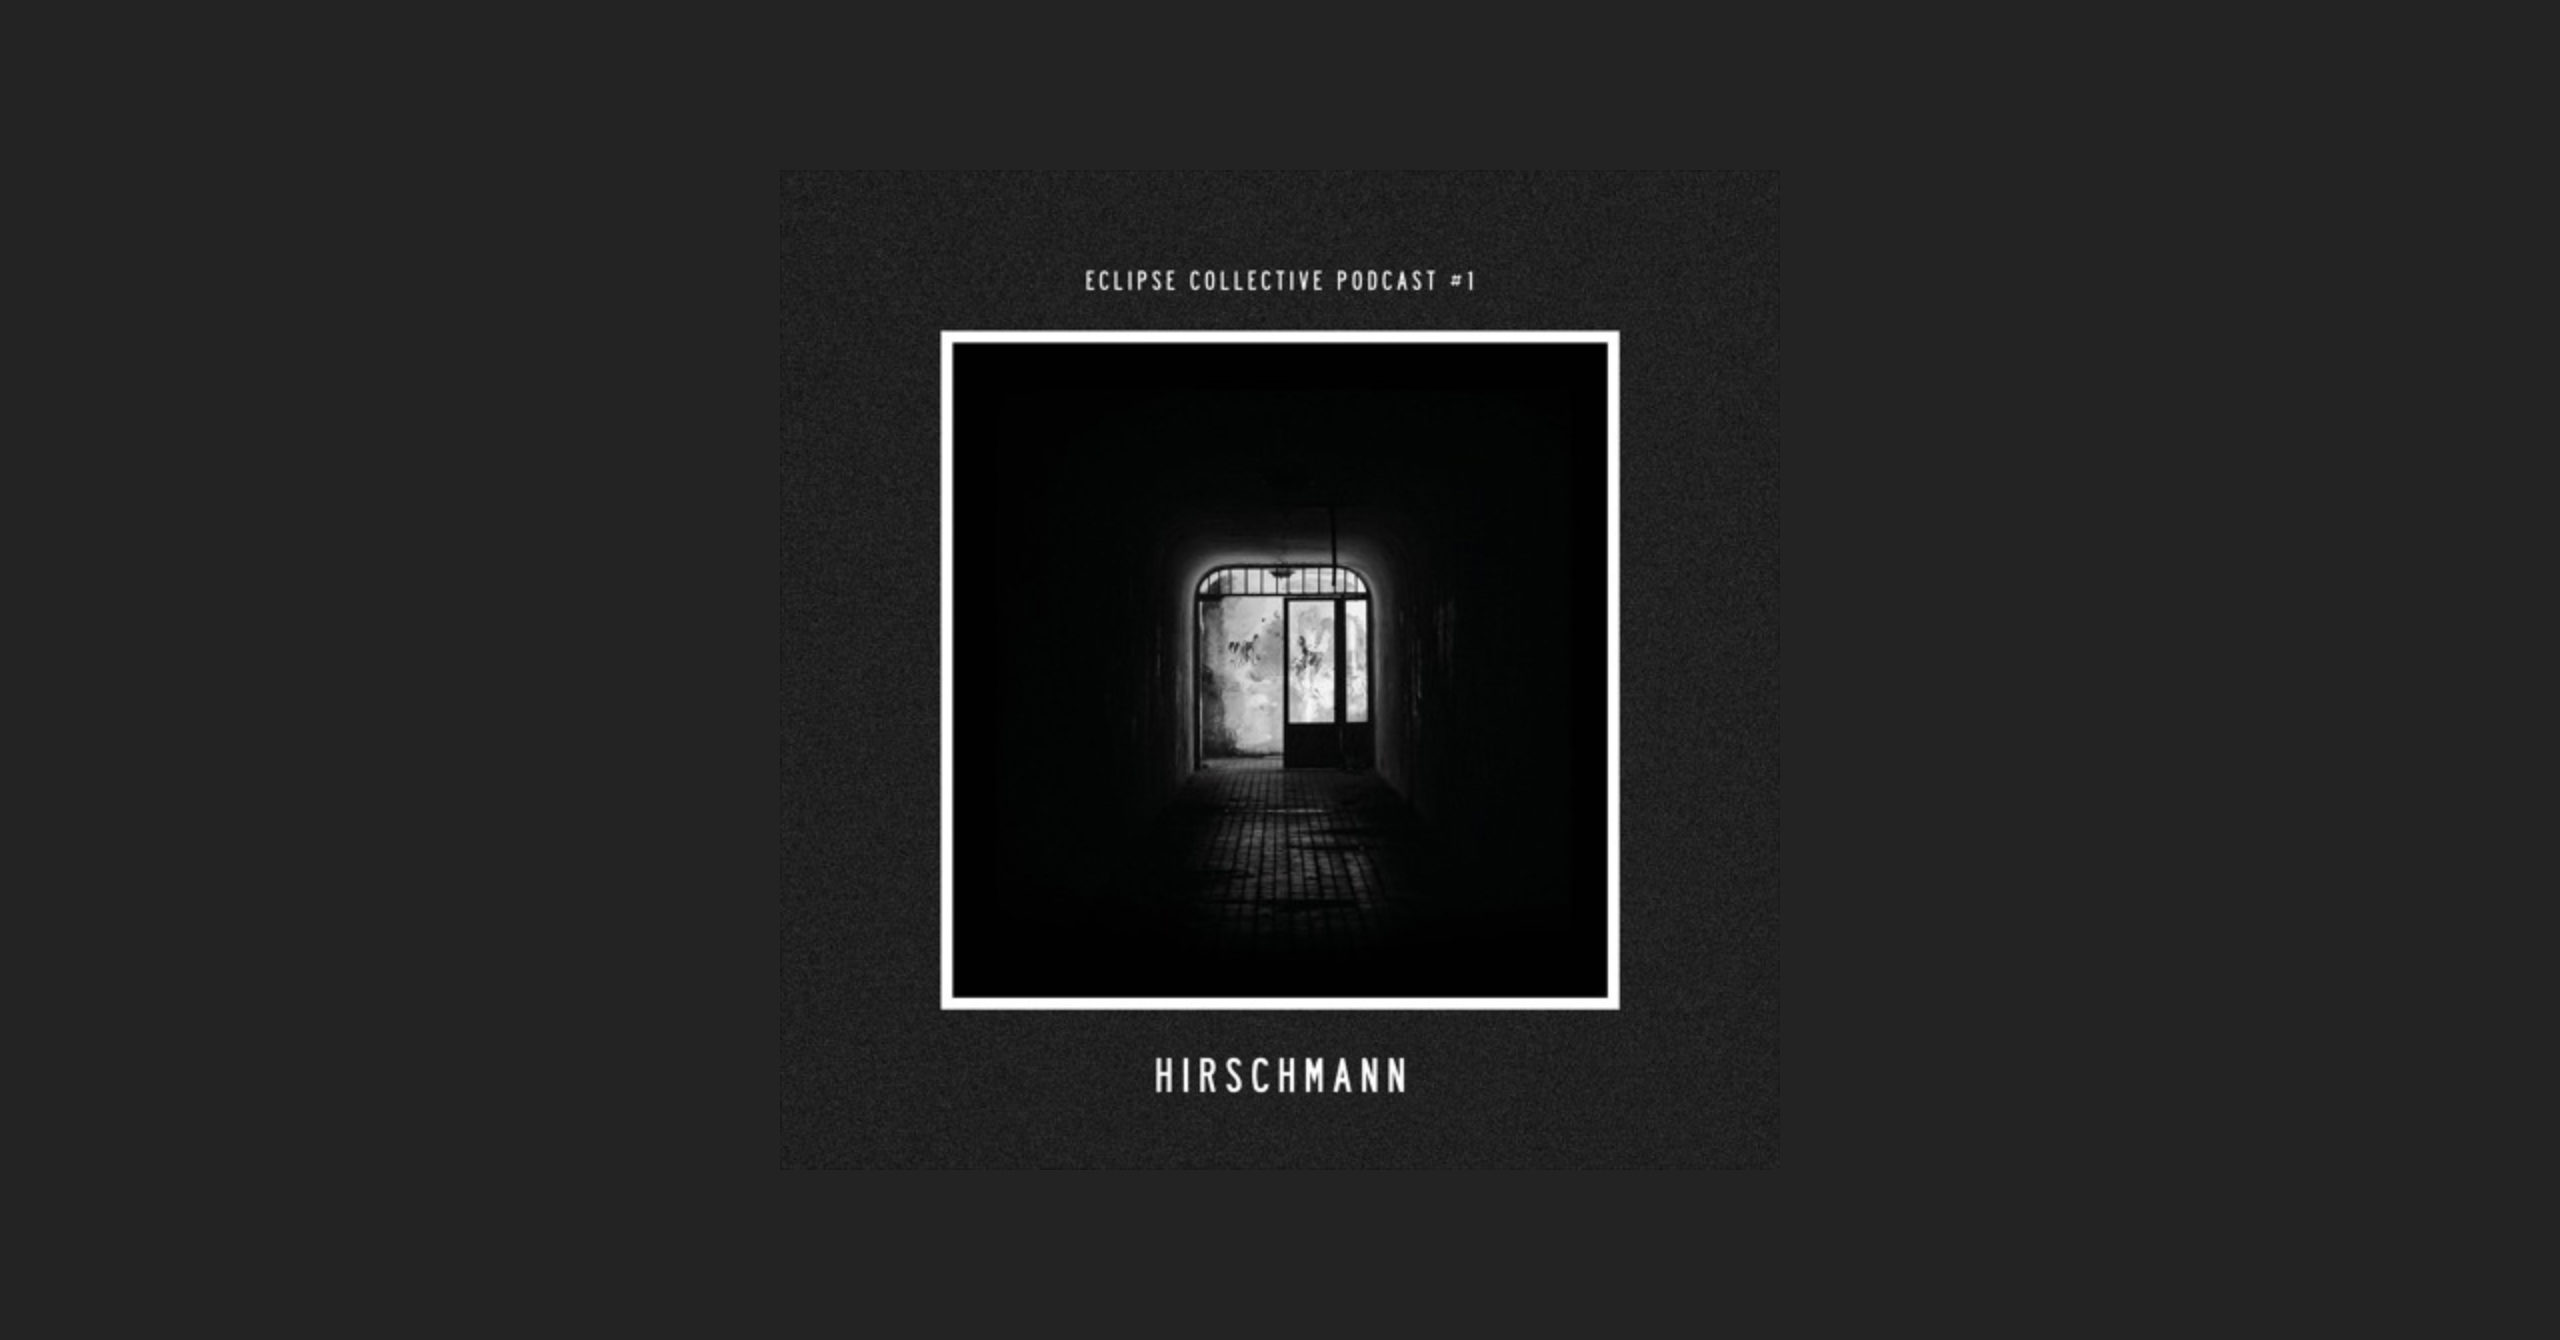 Cover Eclipse Collective Podcast #1 - Hirschmann